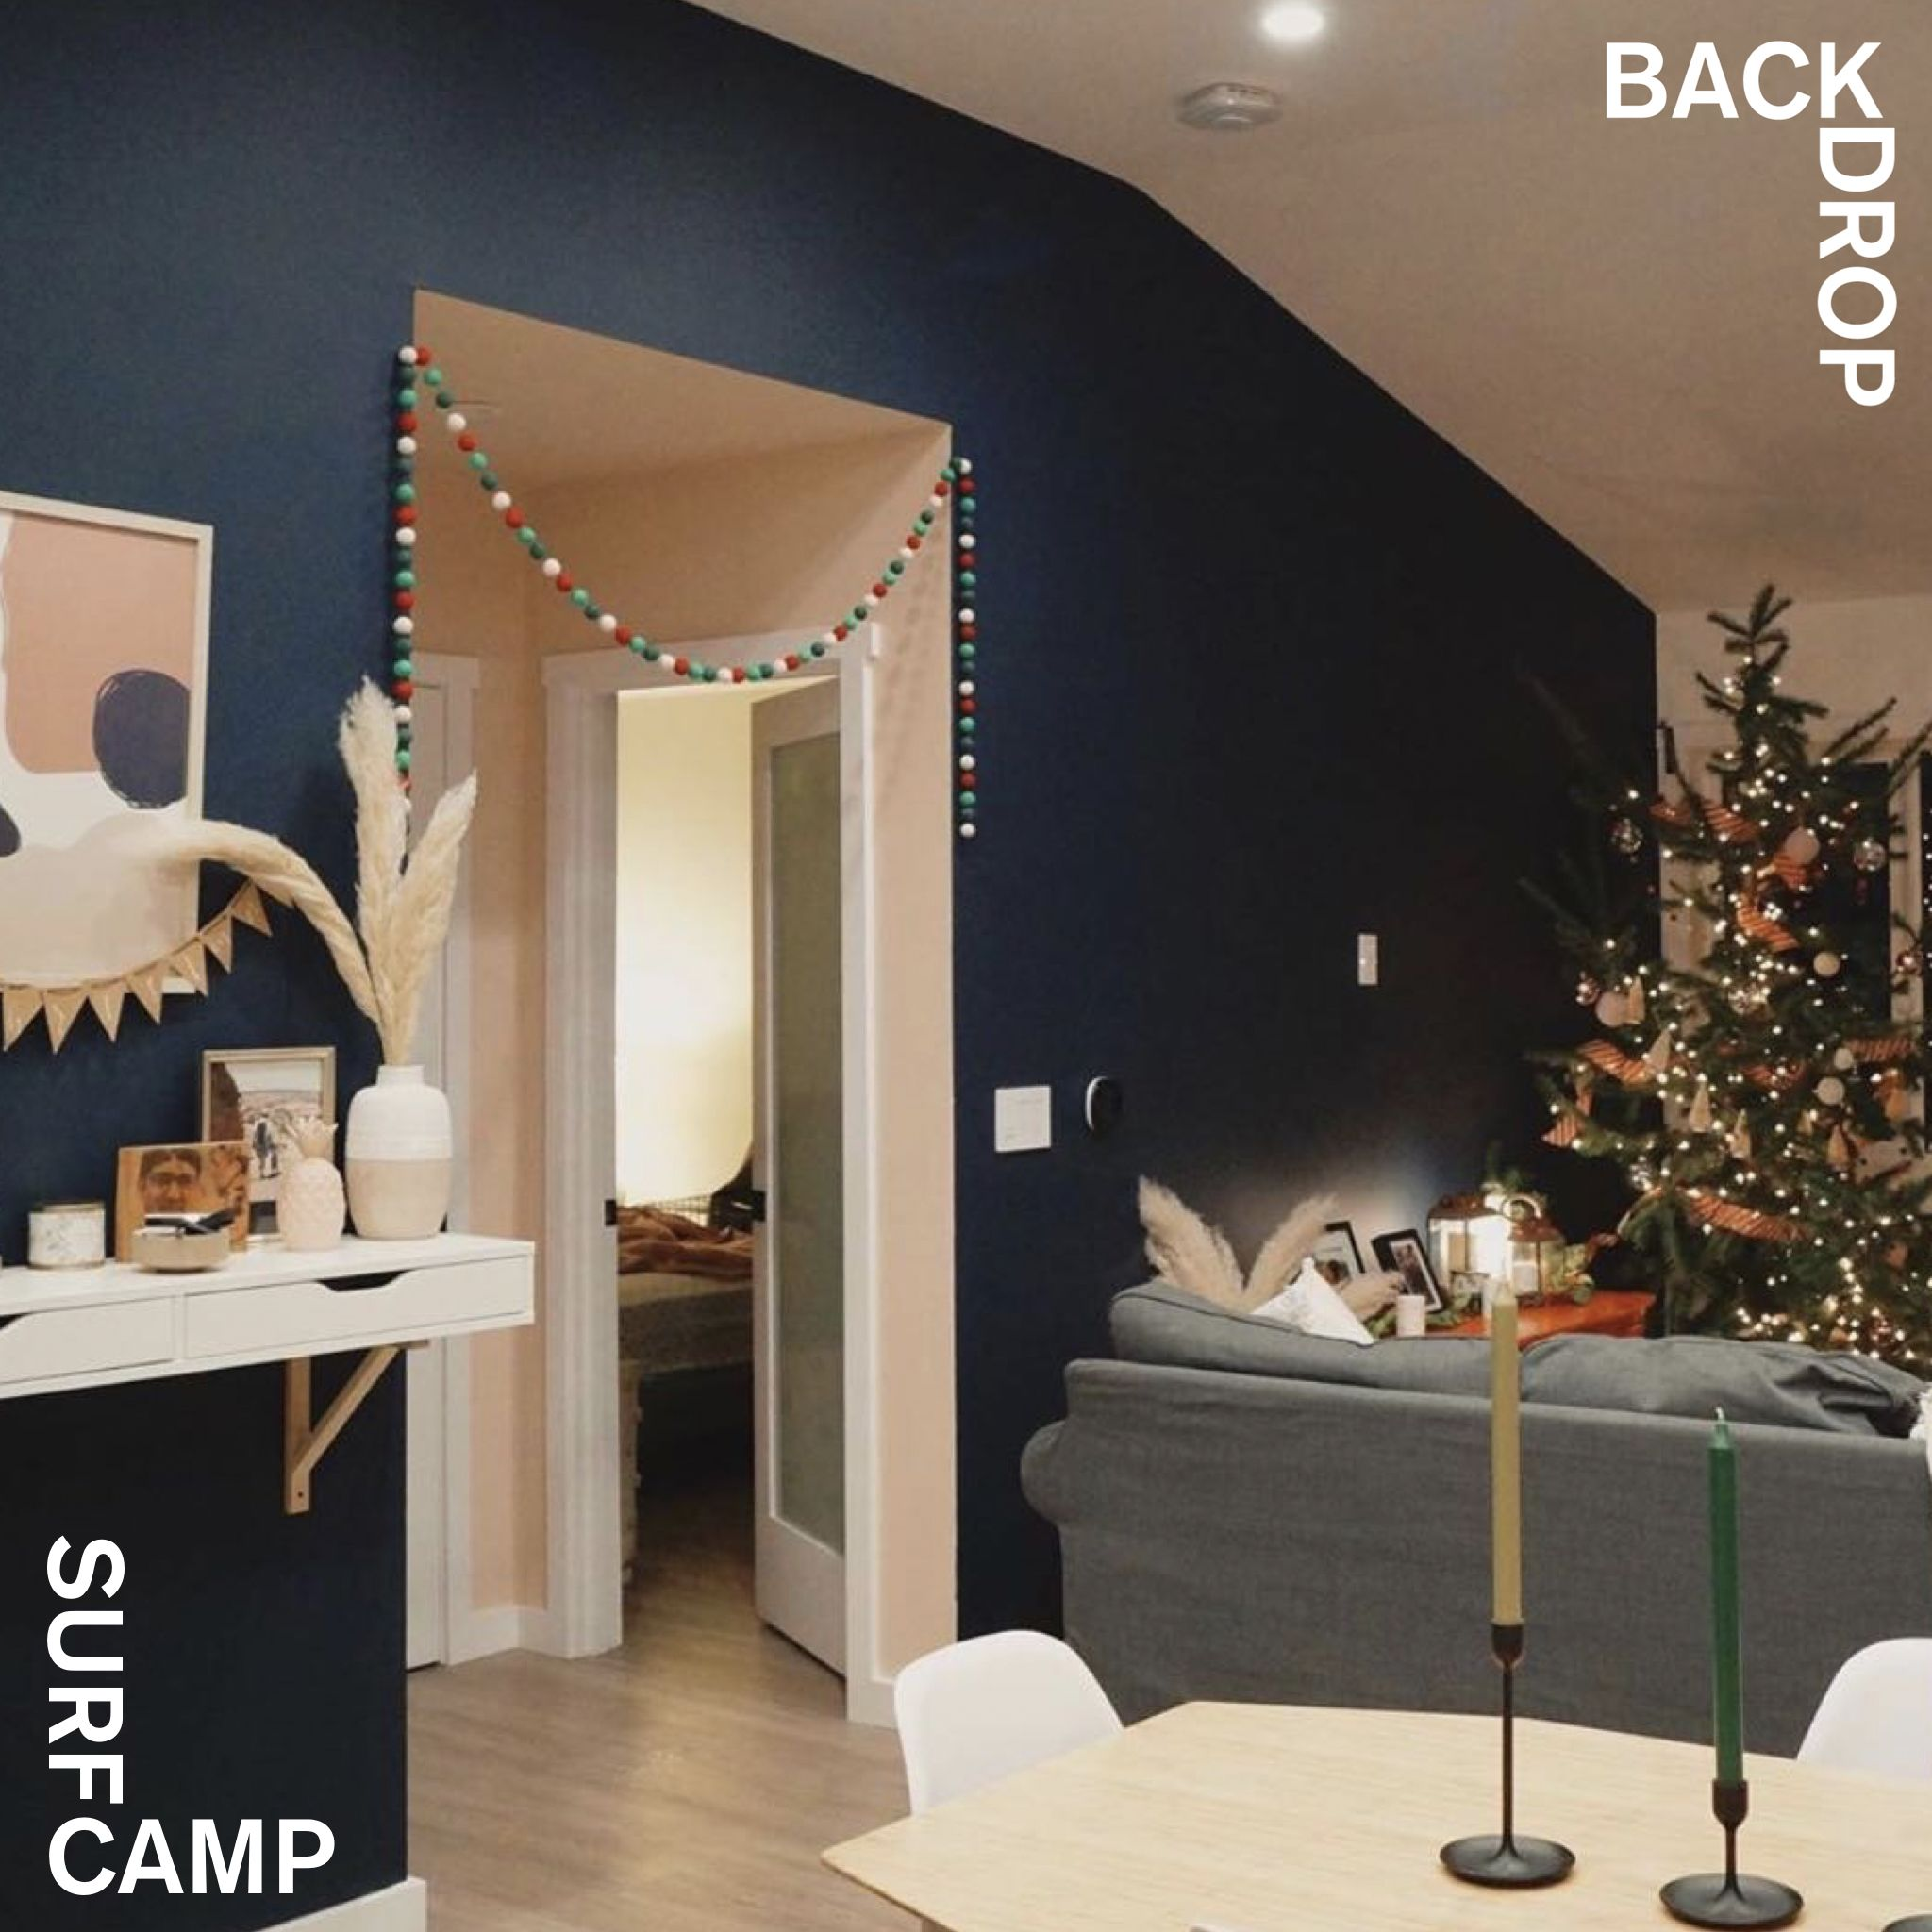 surf camp best blue paint colors interior wall paint on interior wall paint colors id=96154